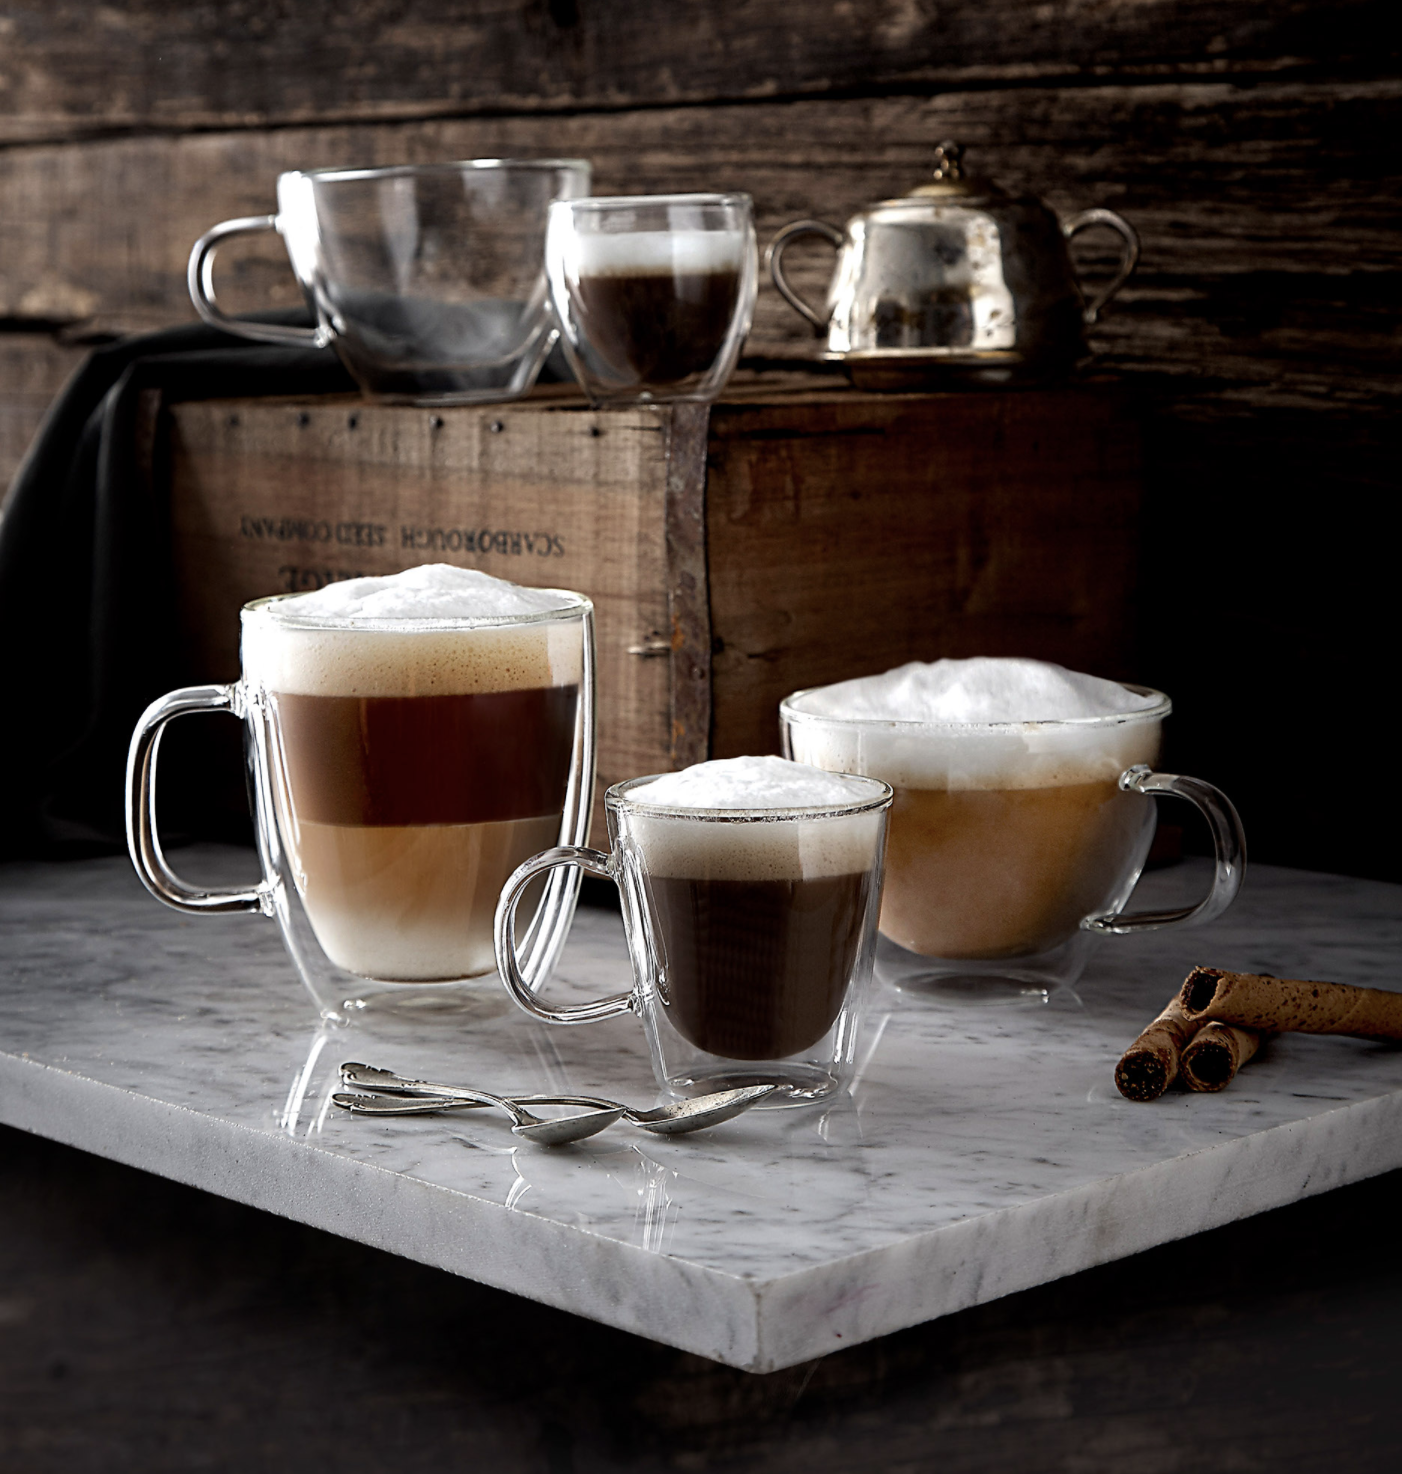 FALABELLA COFFEE MAKERS - ART DIRECTION, STYLING AND PRODUCTION @SILVINA BIDABEHERE